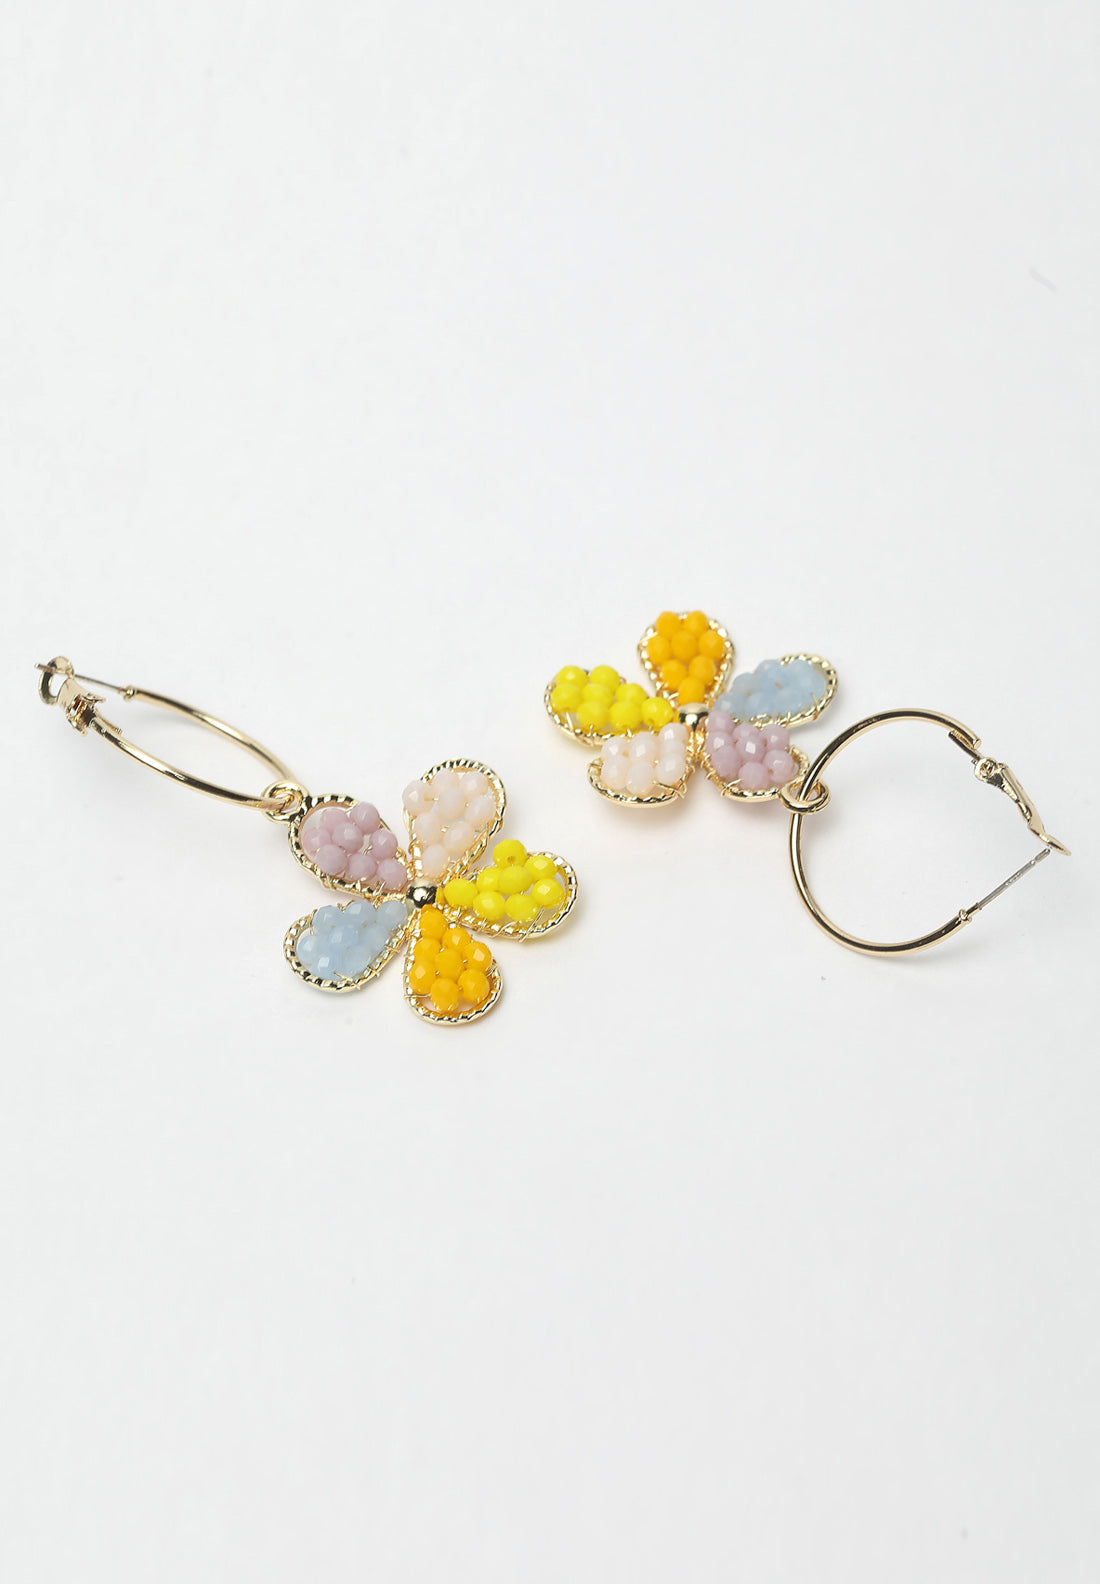 Avant-Garde Paris Multi-colored Floral Stones Hanging Earrings